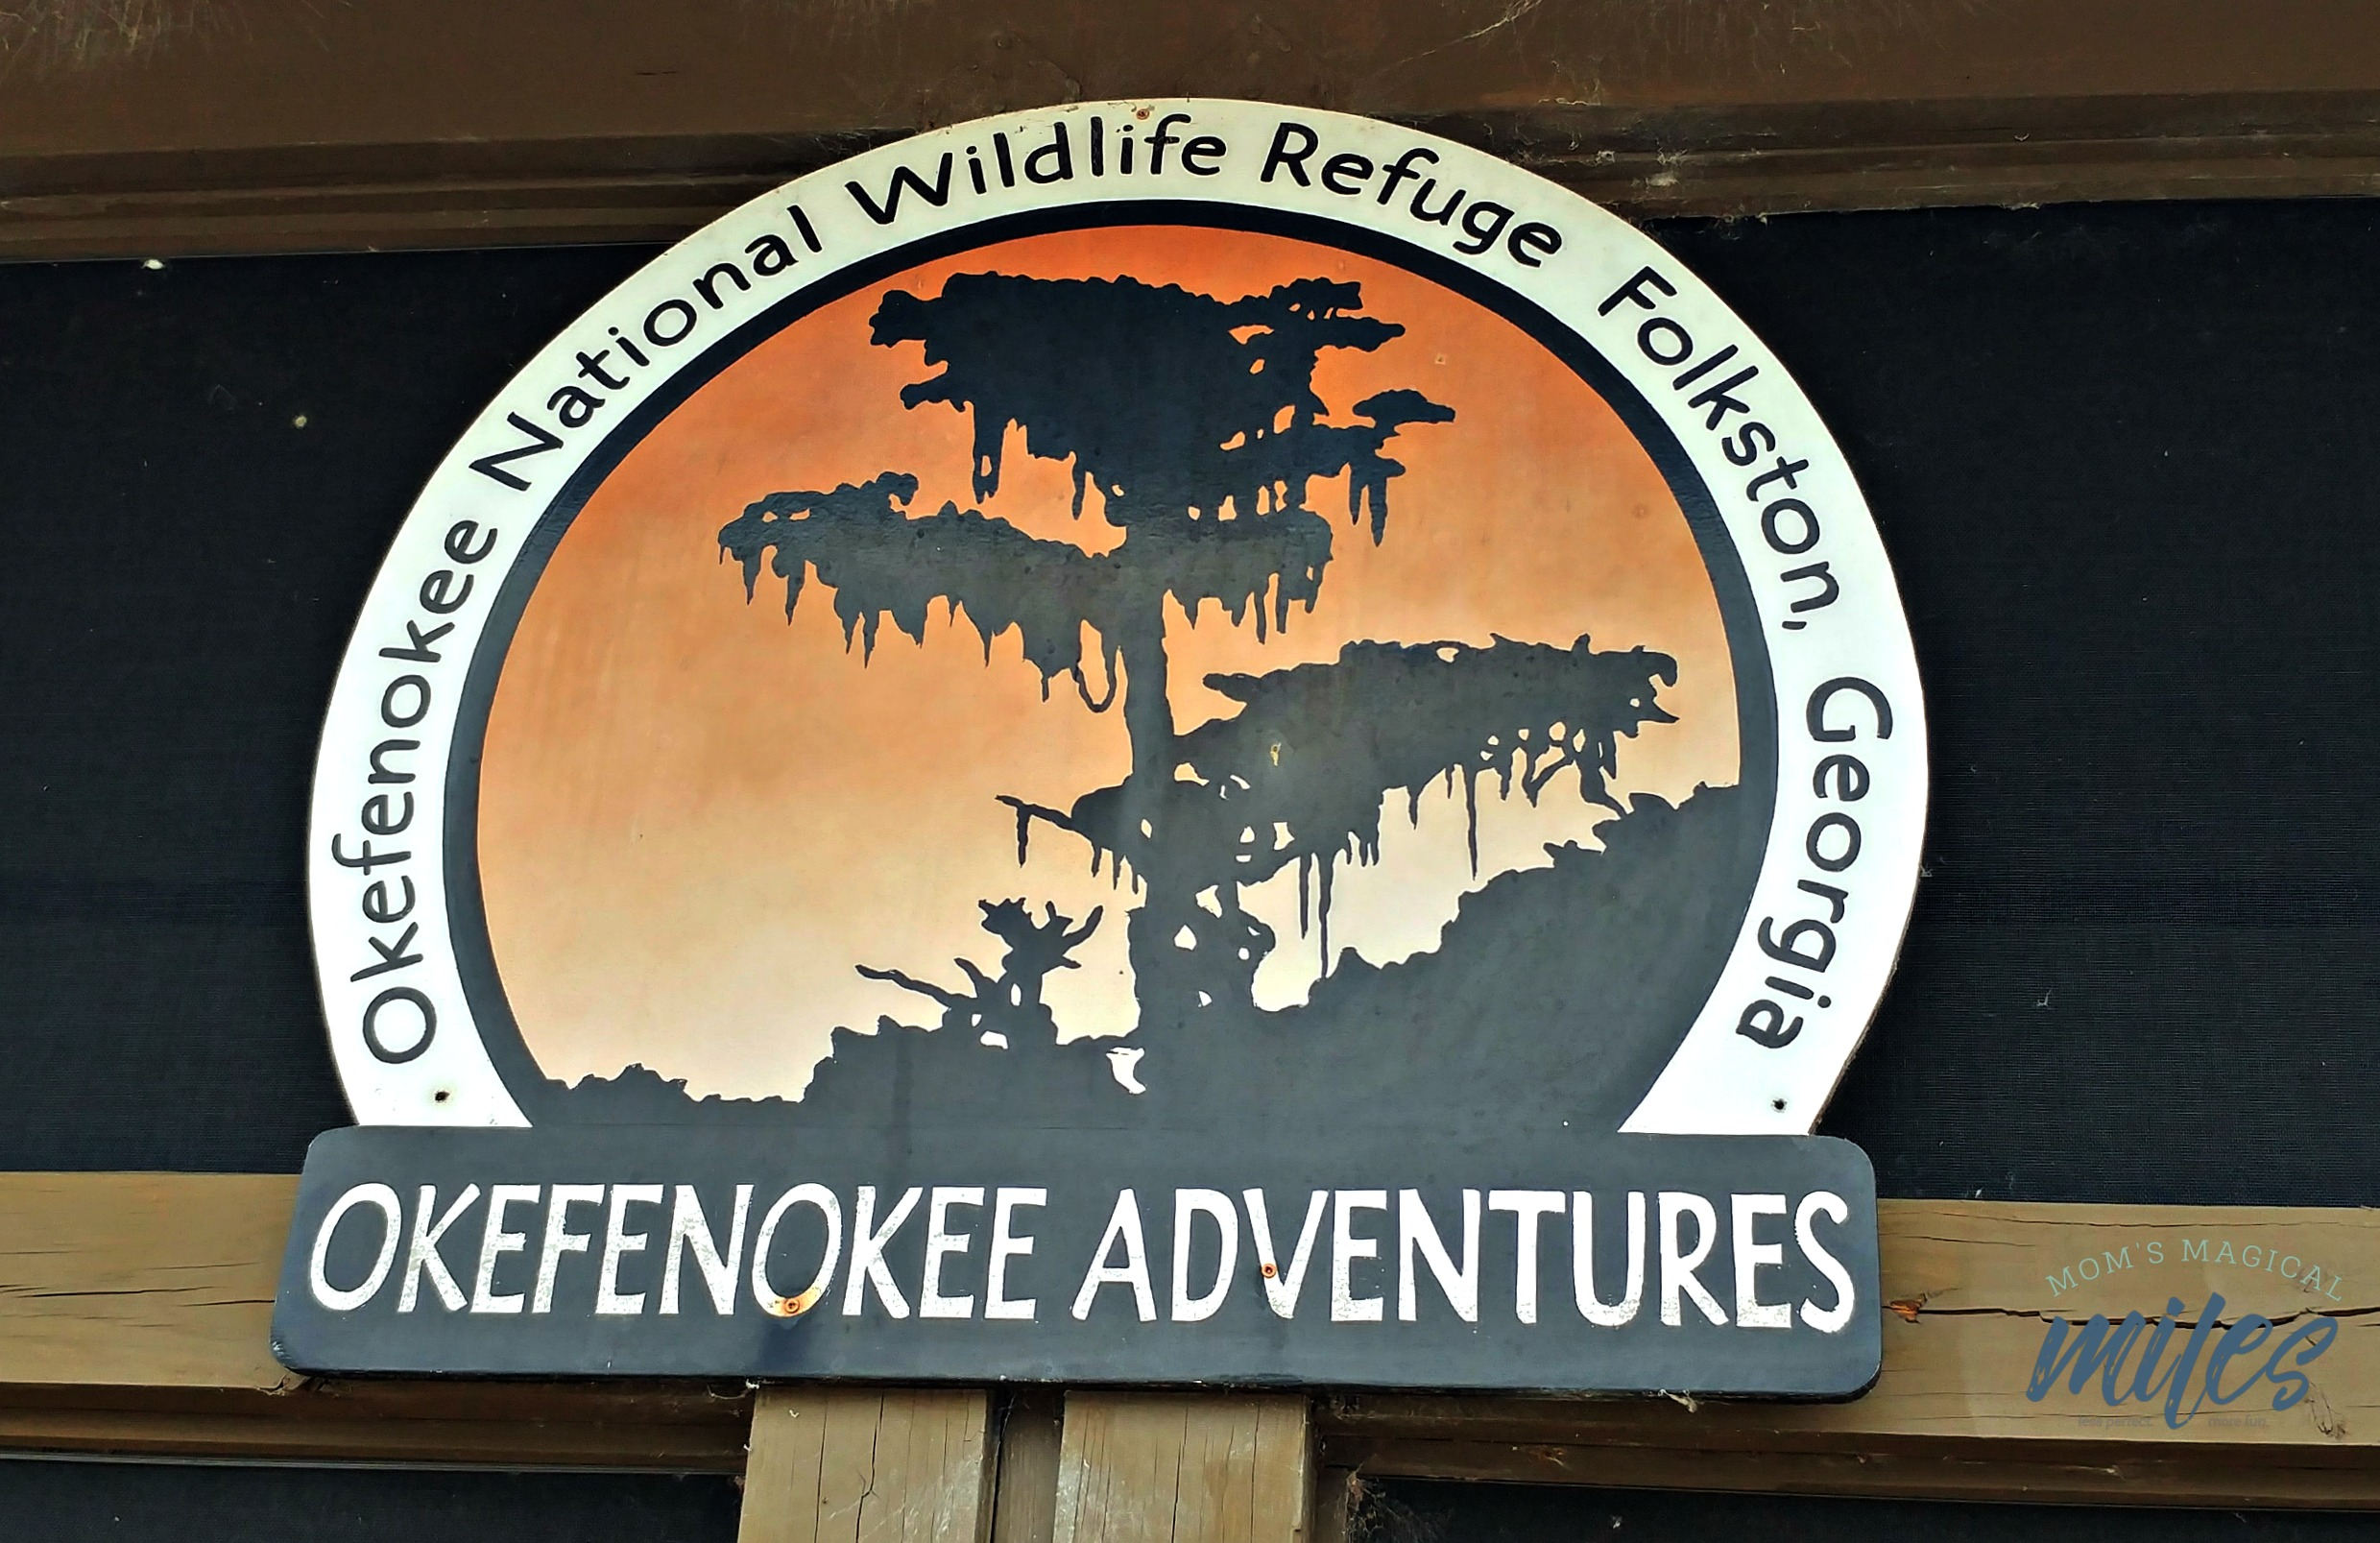 Okefenokee Adventures offers all manner of guided swamp tours, including overnights!